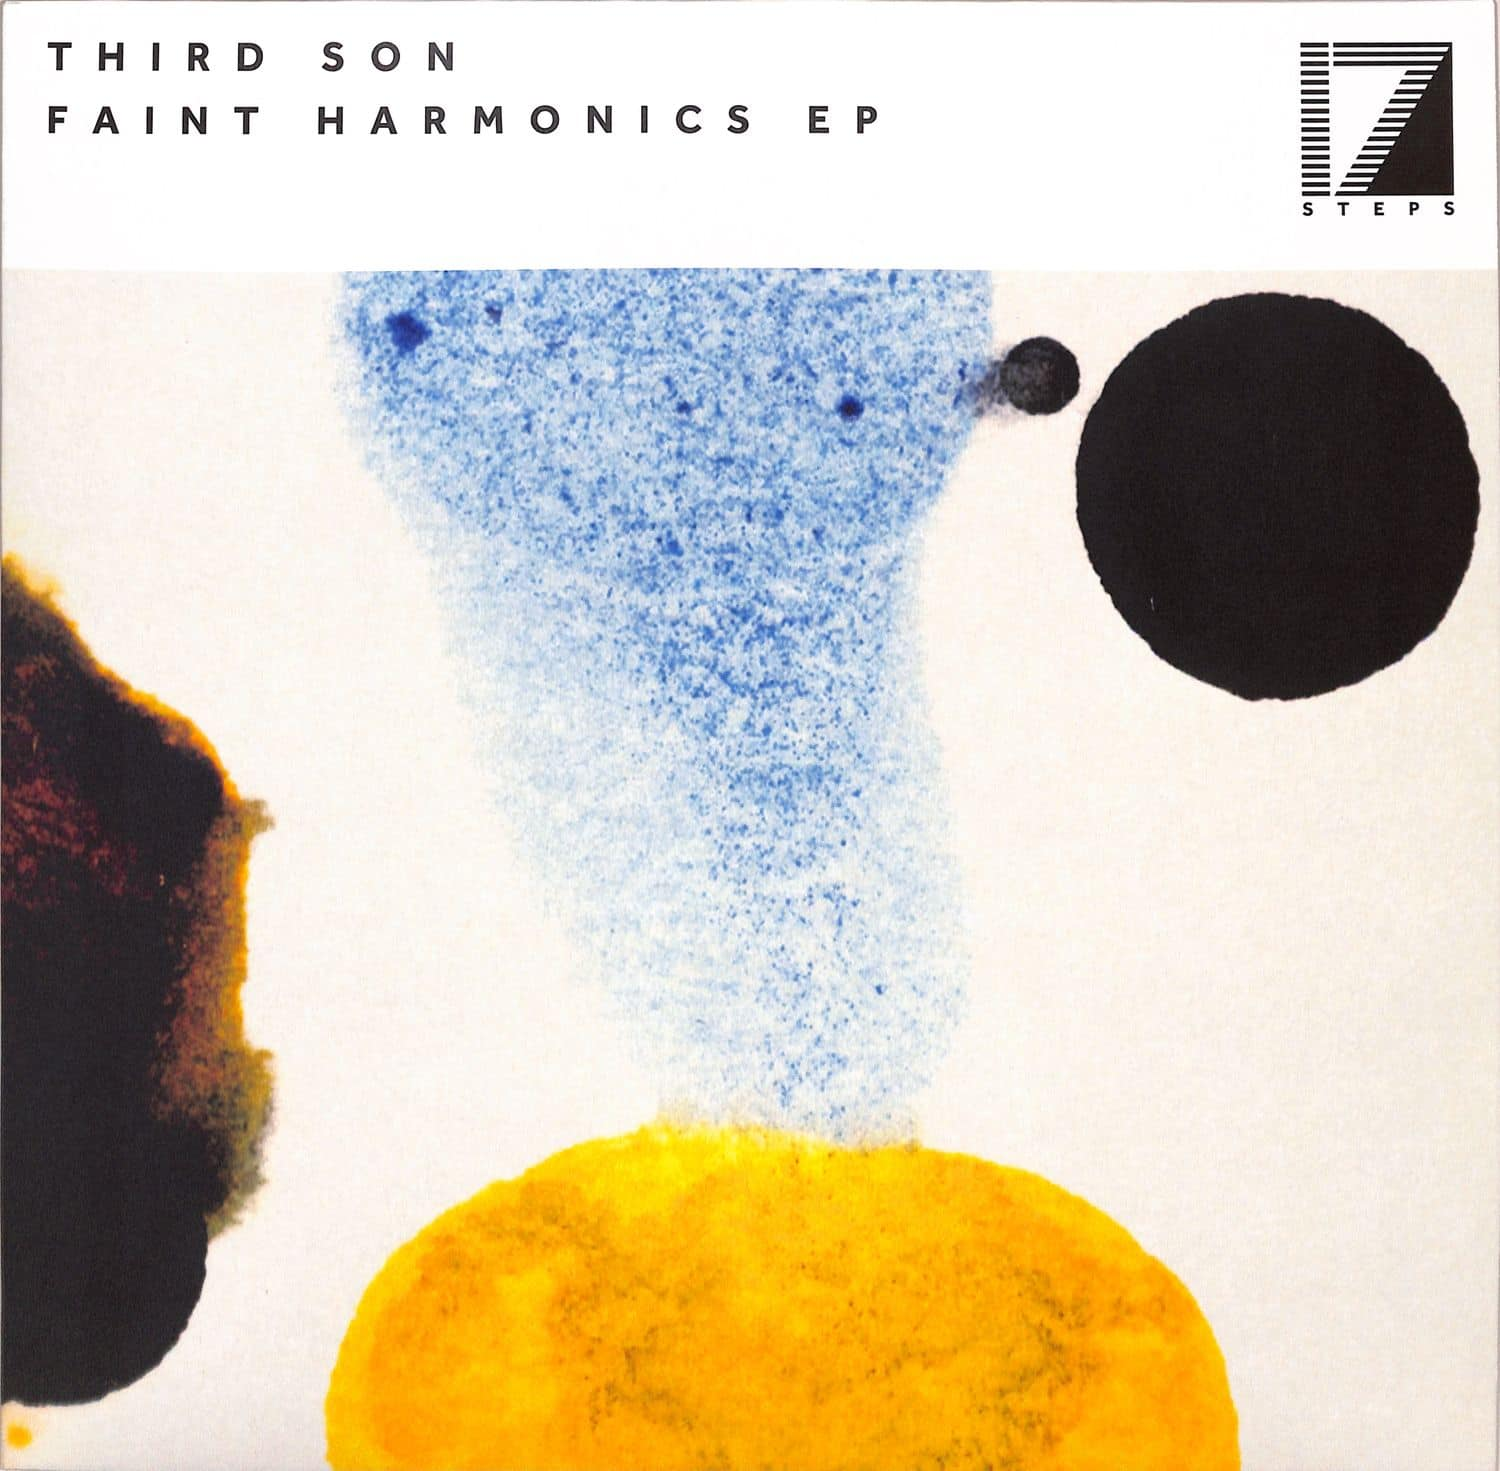 Third Son - FAINT HARMONICS EP